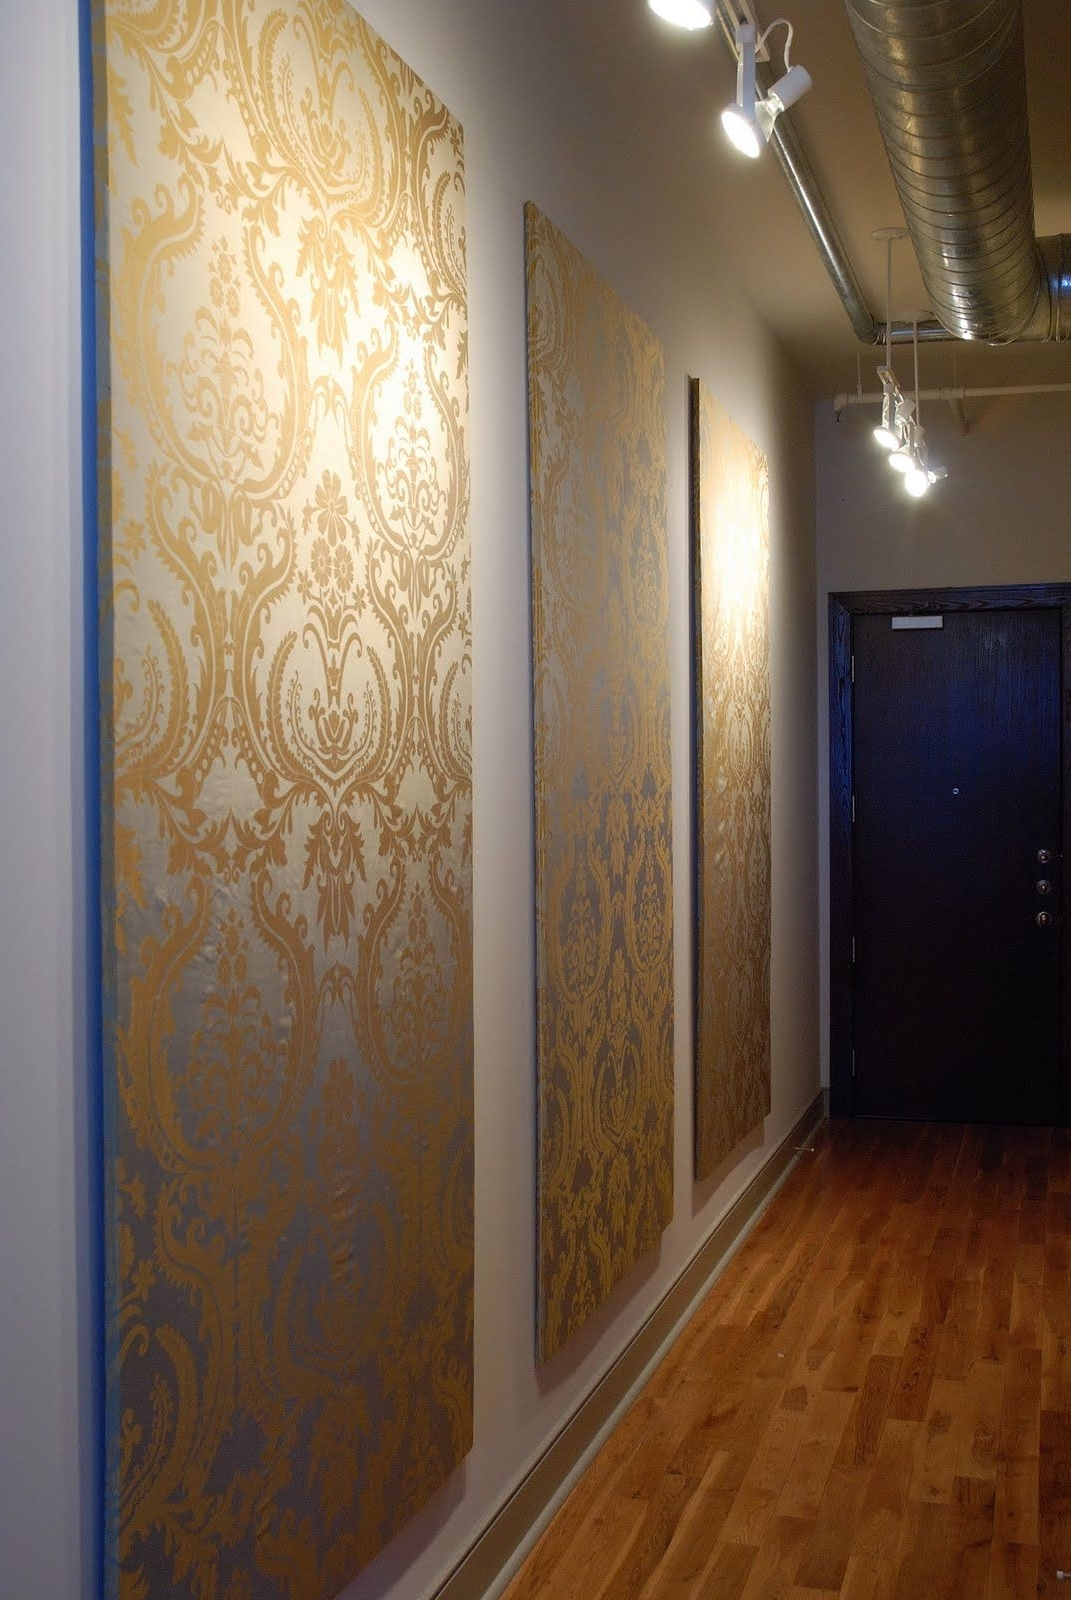 Newest Temporary Wall Coverings: 7 Great Ideas For When You Can't Paint In Foam Board Fabric Wall Art (View 10 of 15)